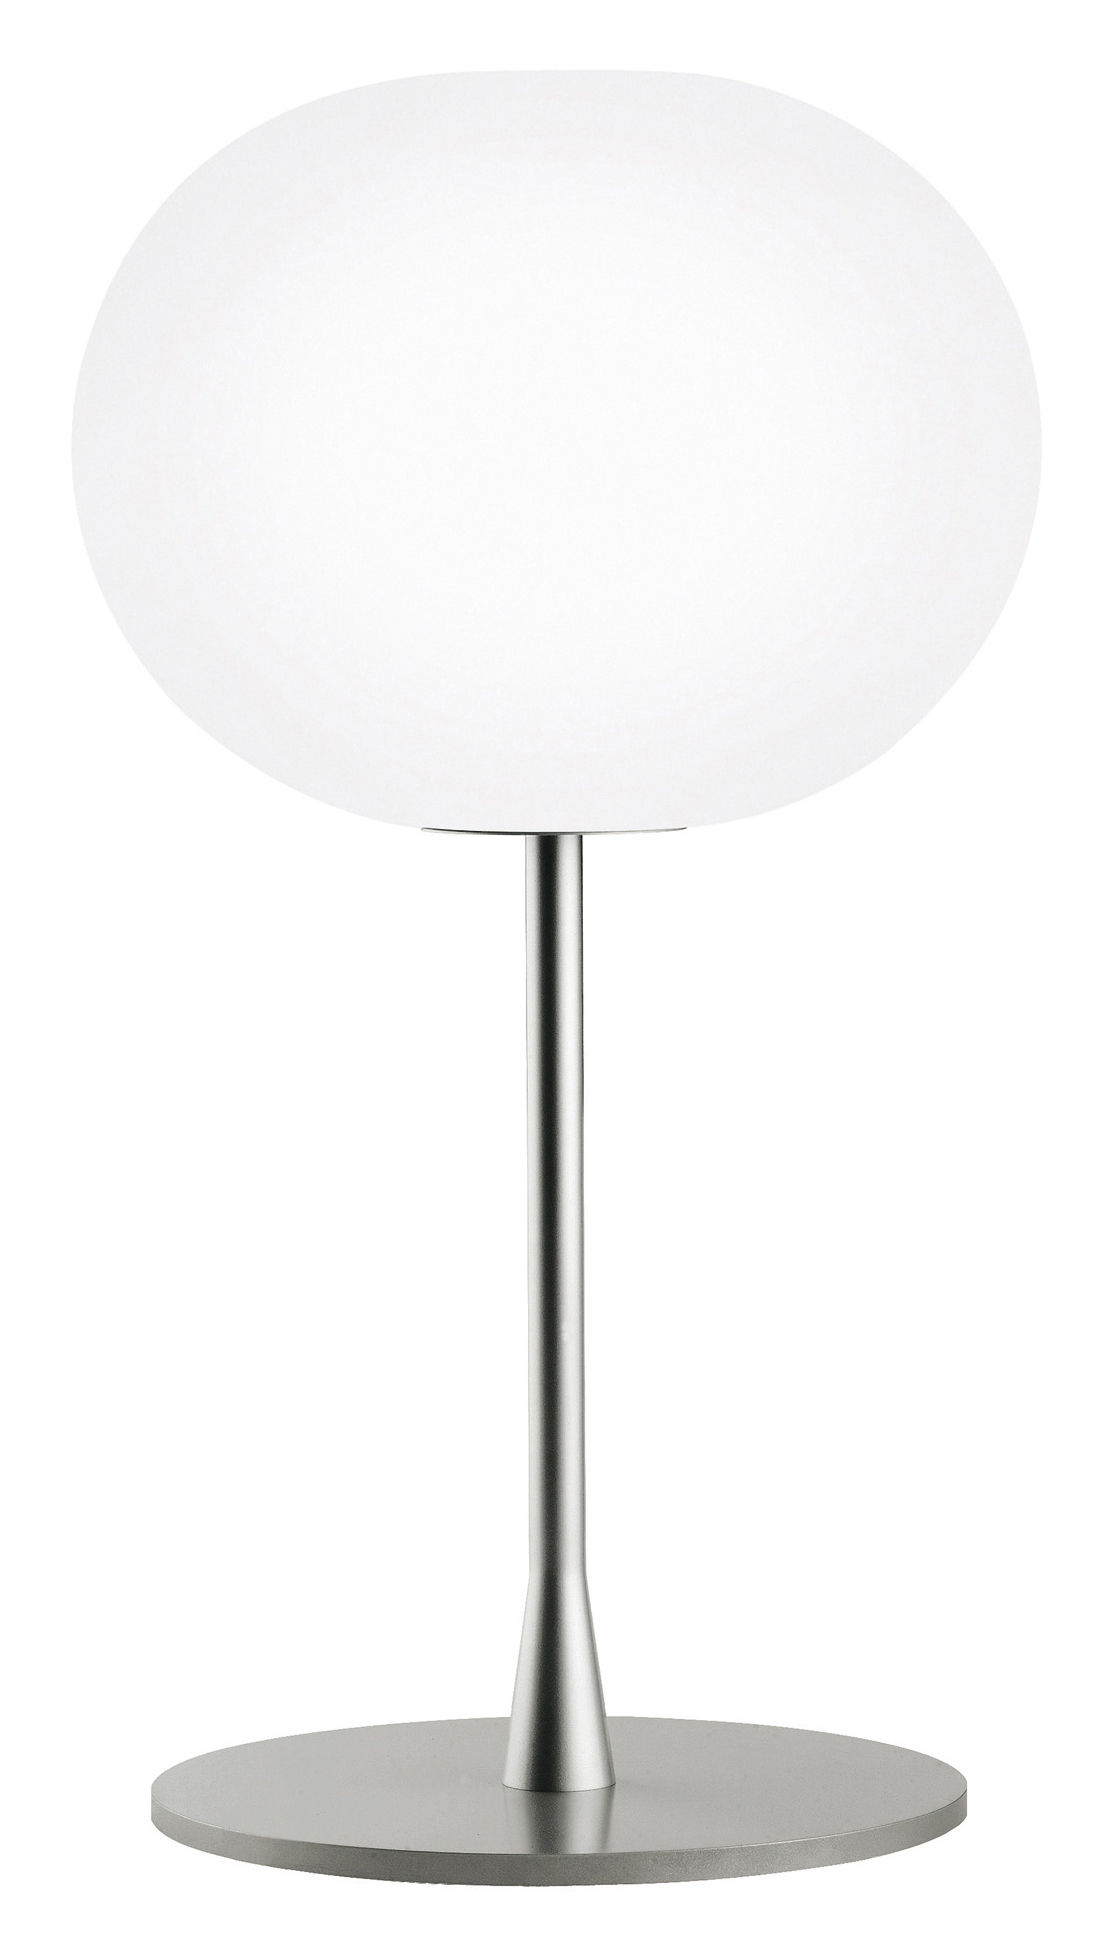 Lighting - Table Lamps - Glo-Ball T1 Table lamp by Flos - White / Steel - Glass, Steel